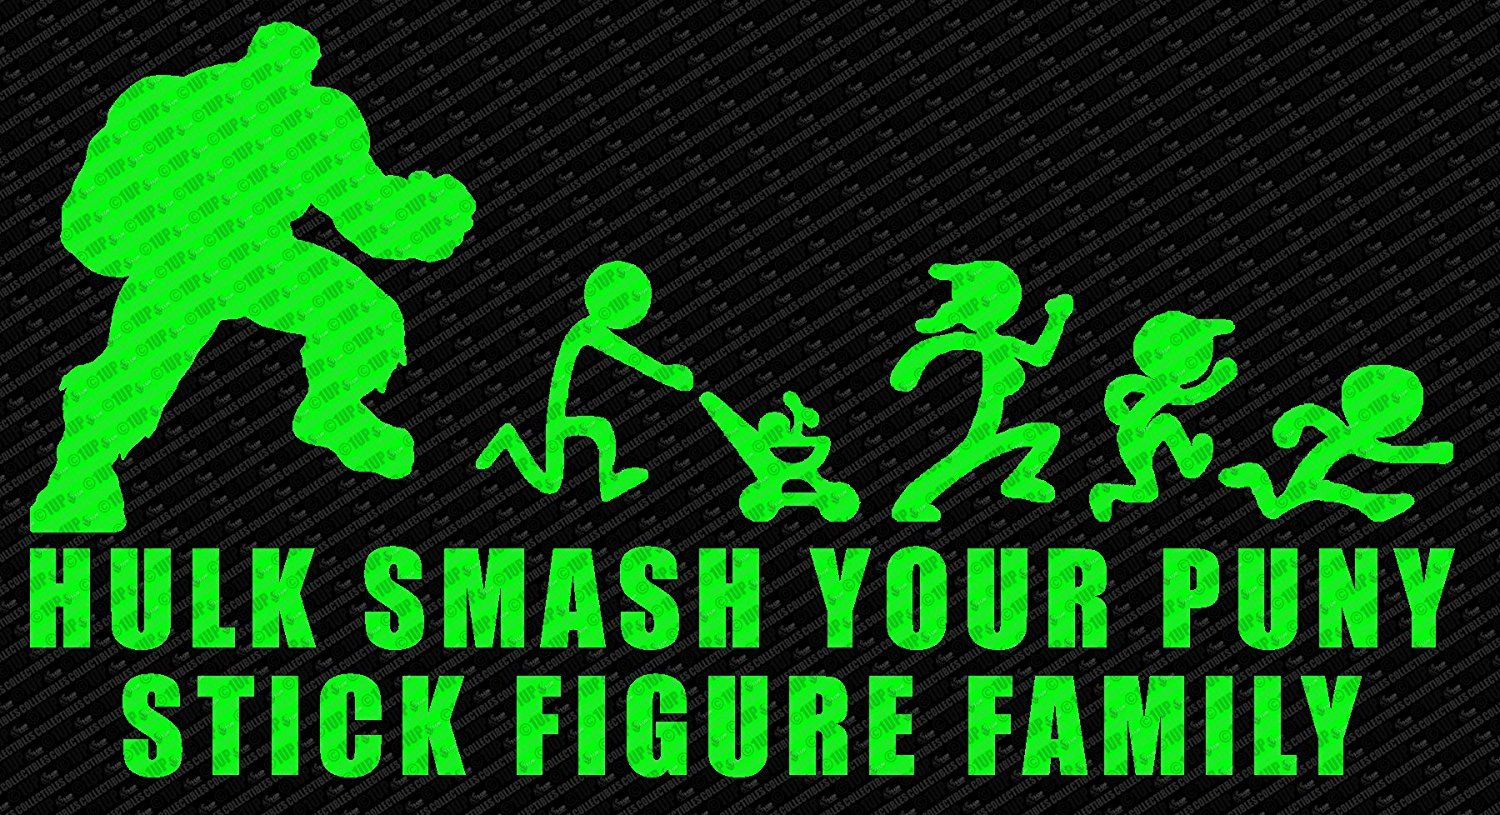 Amazoncom Hulk Smash Your Puny Stick Figure Family Die Cut Vinyl - Cool custom vinyl decals for carsamazoncom hulk vinyl decal sticker automotive